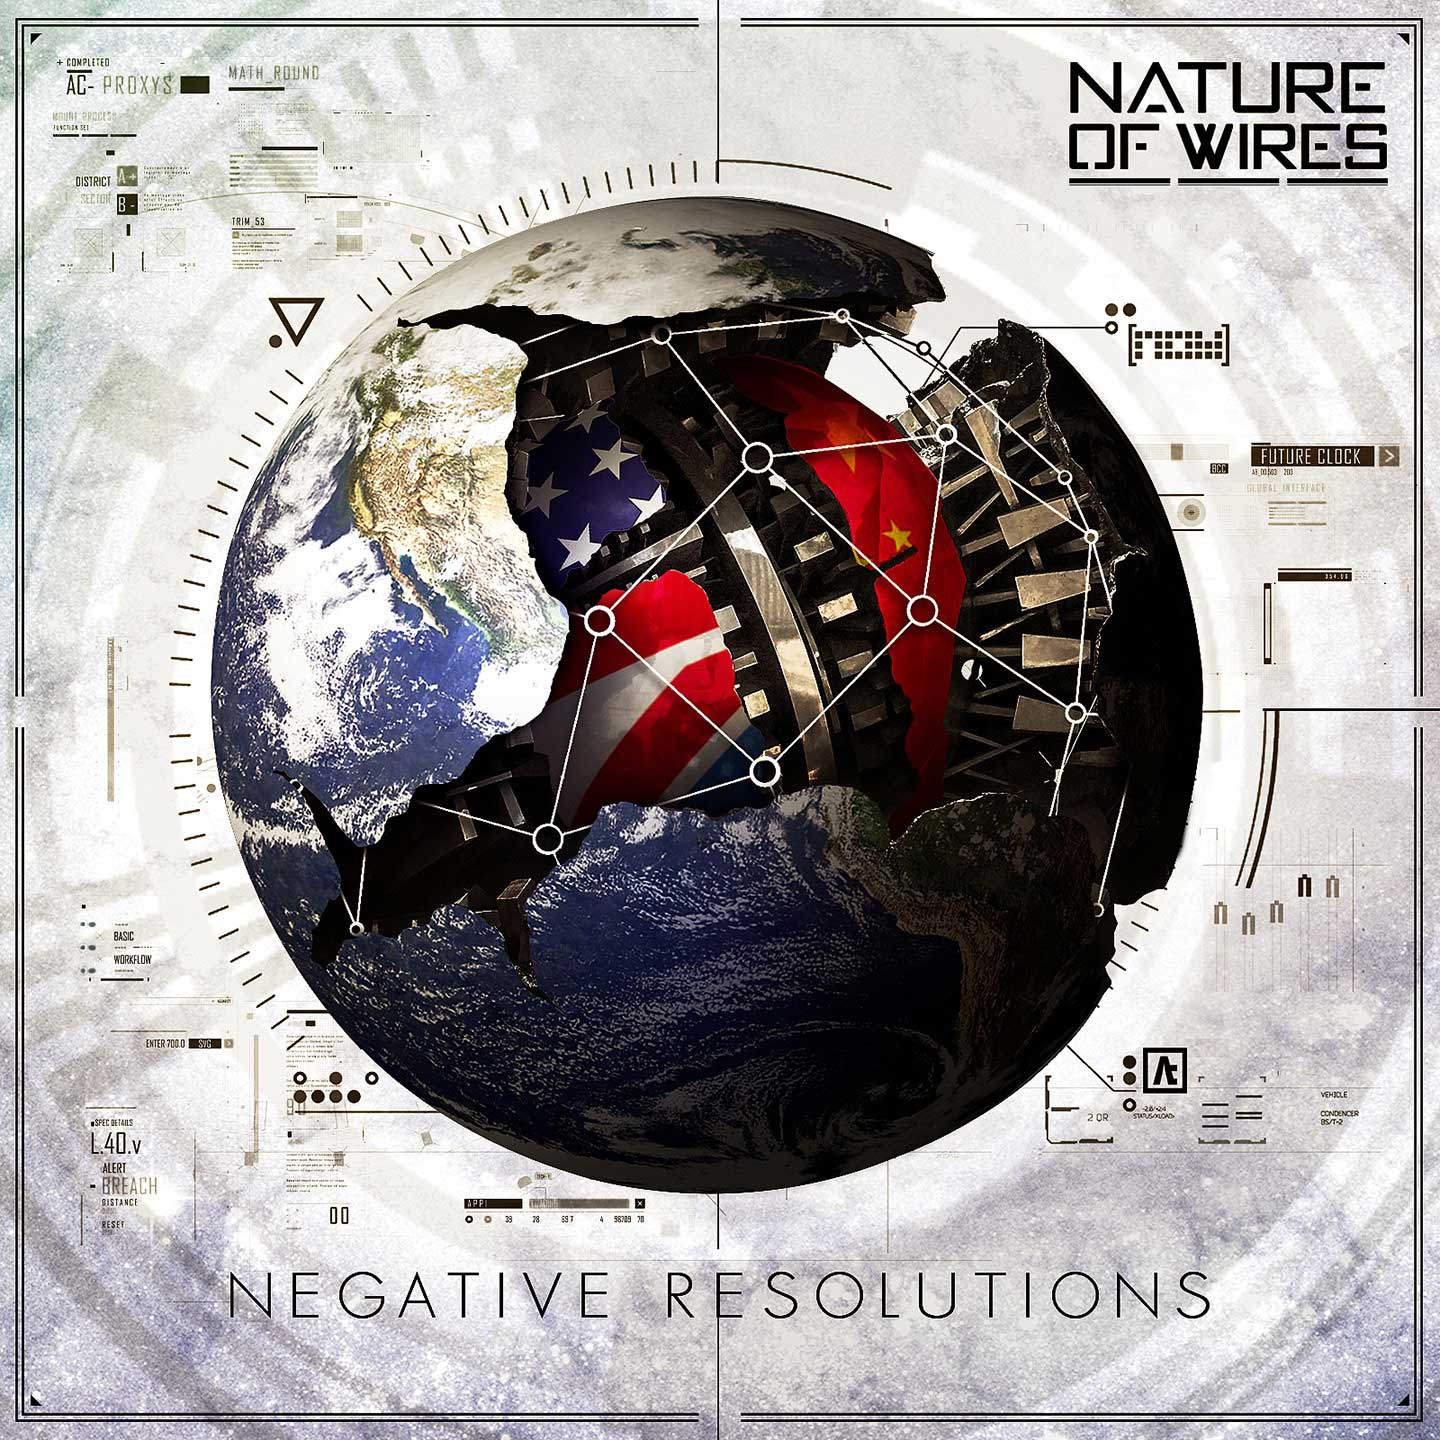 Nature of Wires - Negative Resolutions (Rotersand Rework) - Nature of Wires - Negative Resolutions